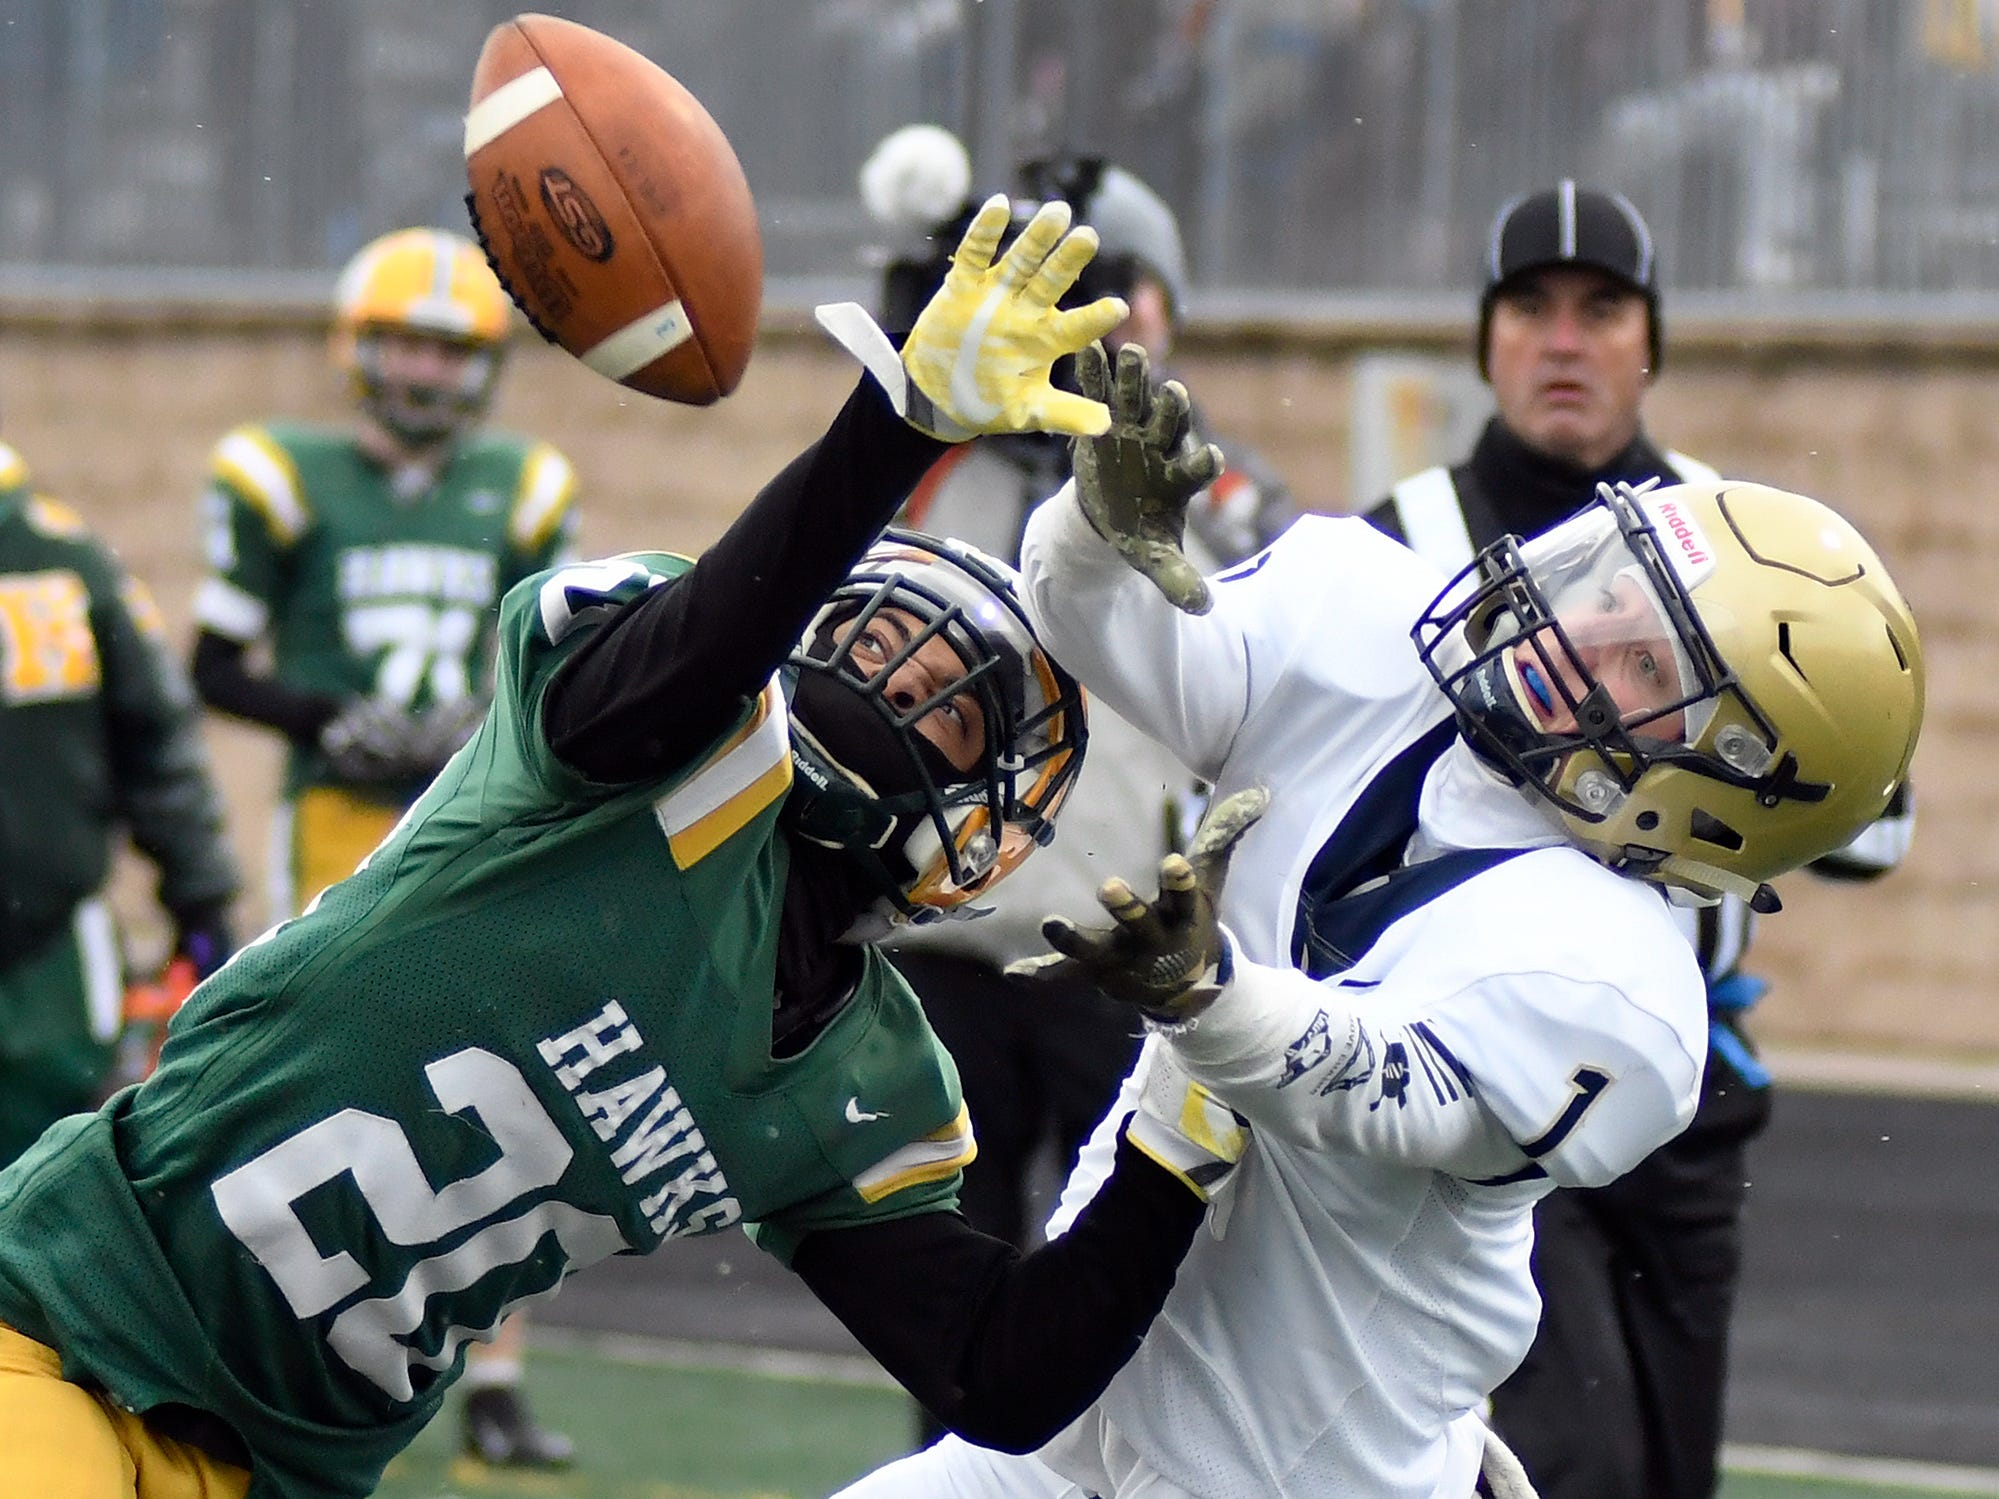 Farmington Hills Harrison defensive back Xavier Goldsmith (20) knocks the ball away from Chelsea wide receiver Kyle Knight (1) in the fourth quarter.